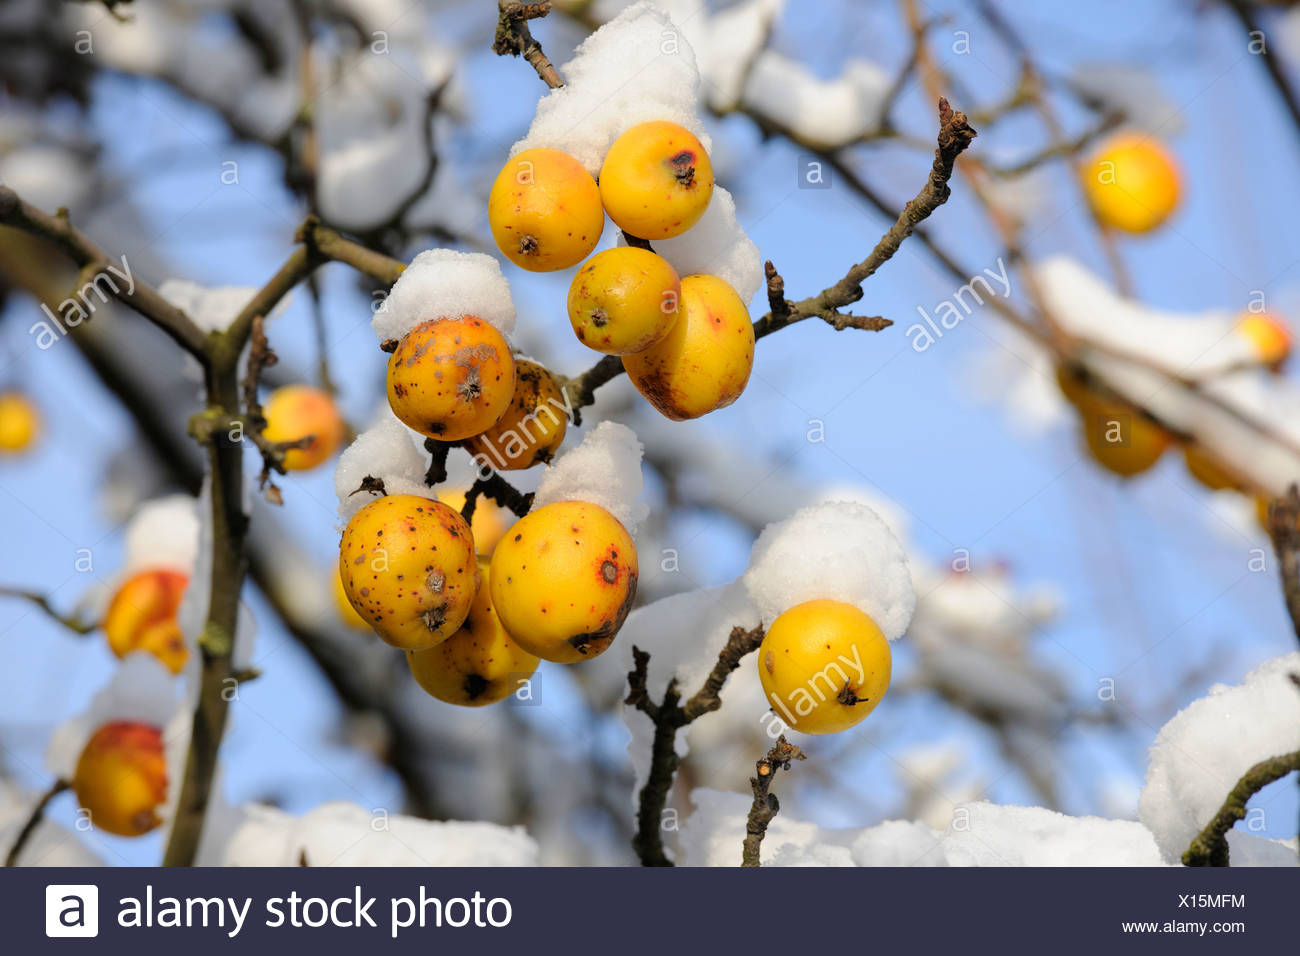 Crab Apples or European Wild Apples (Malus sylvestris) in the snow, Thuringia, Germany, Europe - Stock Image